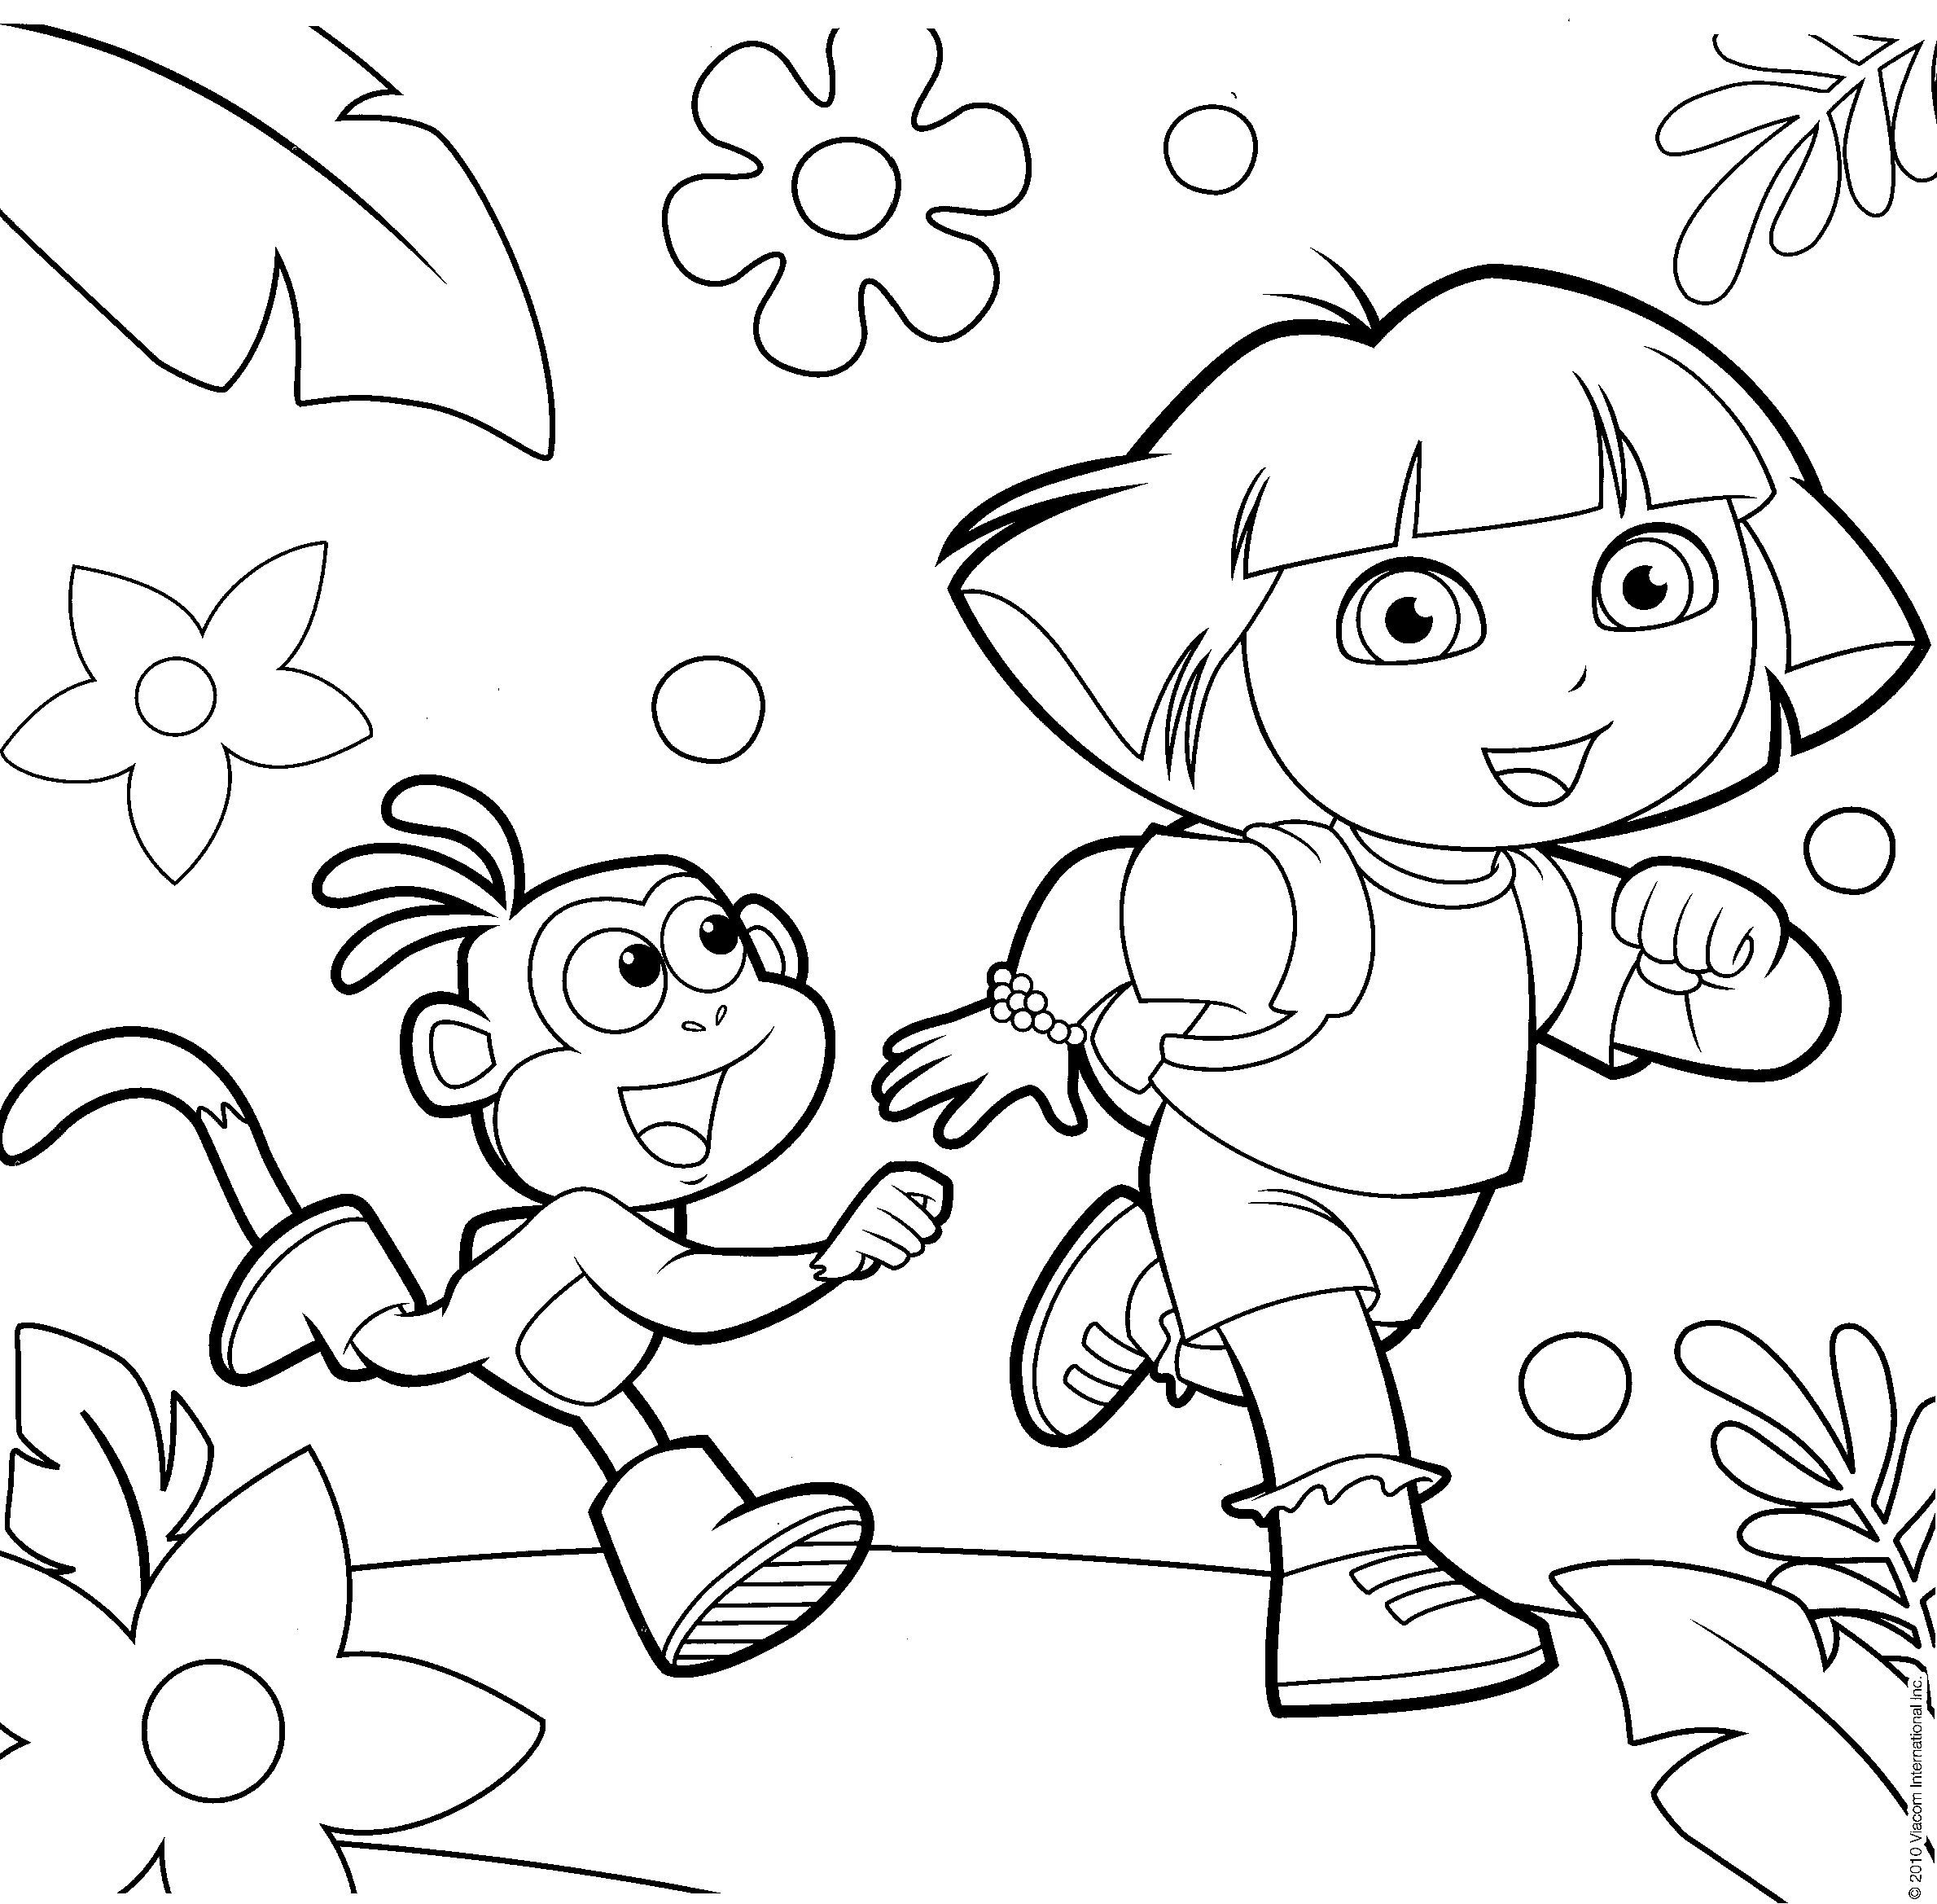 dora the explorer printable coloring pages free printable dora the explorer coloring pages for kids dora pages coloring the printable explorer